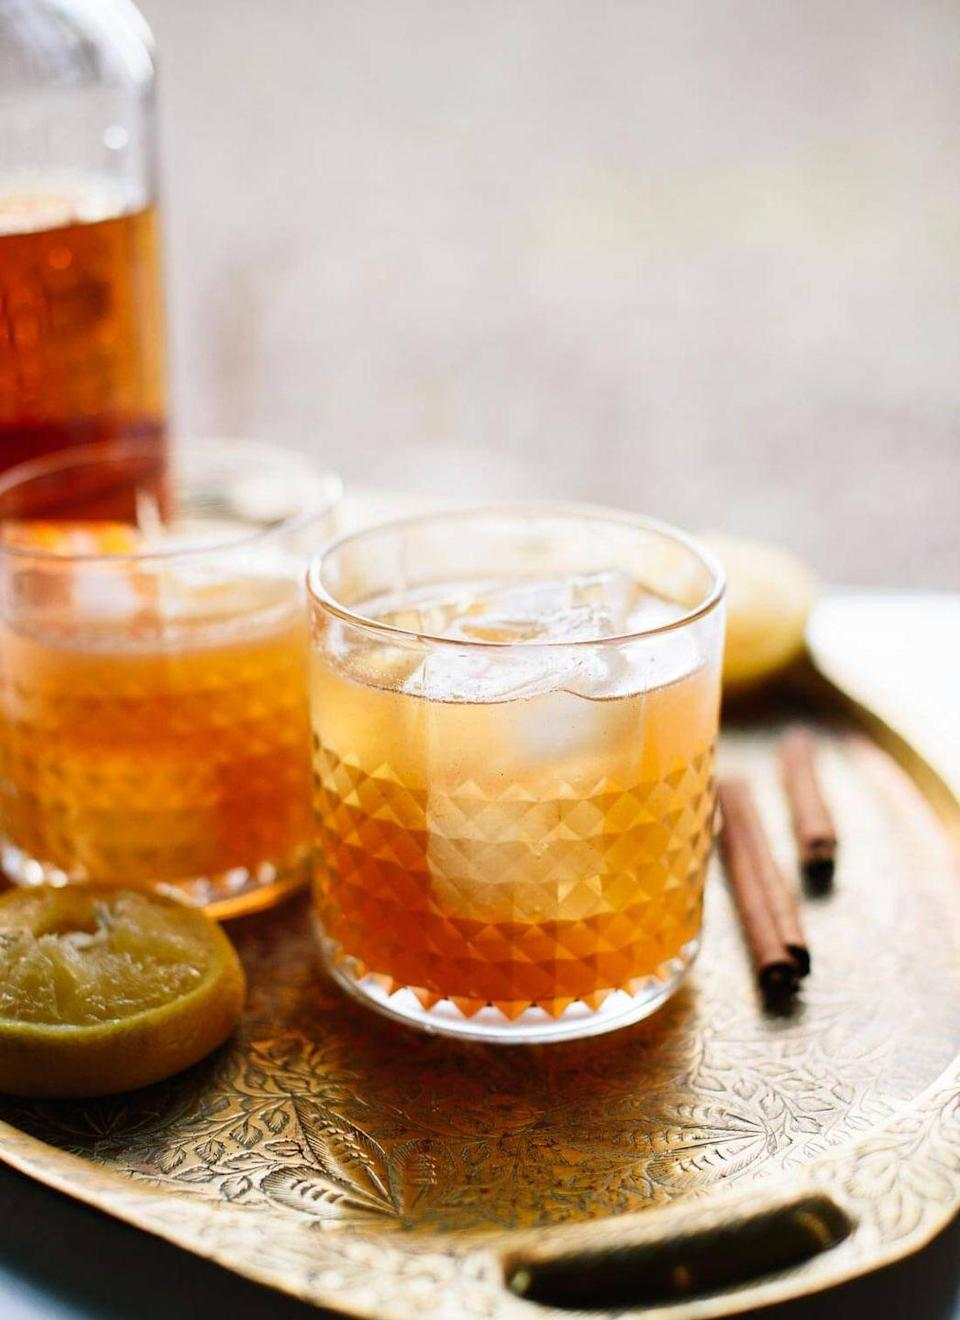 """<p>Even those who don't love whiskey will want to try this cocktail. It's sweetened with maple syrup and flavored with a pinch of cinnamon.</p><p><strong>Get the recipe at <a href=""""https://cookieandkate.com/cinnamon-maple-whiskey-sour-recipe/"""" rel=""""nofollow noopener"""" target=""""_blank"""" data-ylk=""""slk:Cookie + Kate"""" class=""""link rapid-noclick-resp"""">Cookie + Kate</a>.</strong></p><p><strong><a class=""""link rapid-noclick-resp"""" href=""""https://go.redirectingat.com?id=74968X1596630&url=https%3A%2F%2Fwww.walmart.com%2Fbrowse%2Fdining-entertaining%2Fdrinkware%2F4044_623679_639999_3148543%3Ffacet%3Dbrand%253AThe%2BPioneer%2BWoman&sref=https%3A%2F%2Fwww.thepioneerwoman.com%2Ffood-cooking%2Fmeals-menus%2Fg33510531%2Ffall-cocktail-recipes%2F"""" rel=""""nofollow noopener"""" target=""""_blank"""" data-ylk=""""slk:SHOP DRINKWARE"""">SHOP DRINKWARE</a><br></strong></p>"""